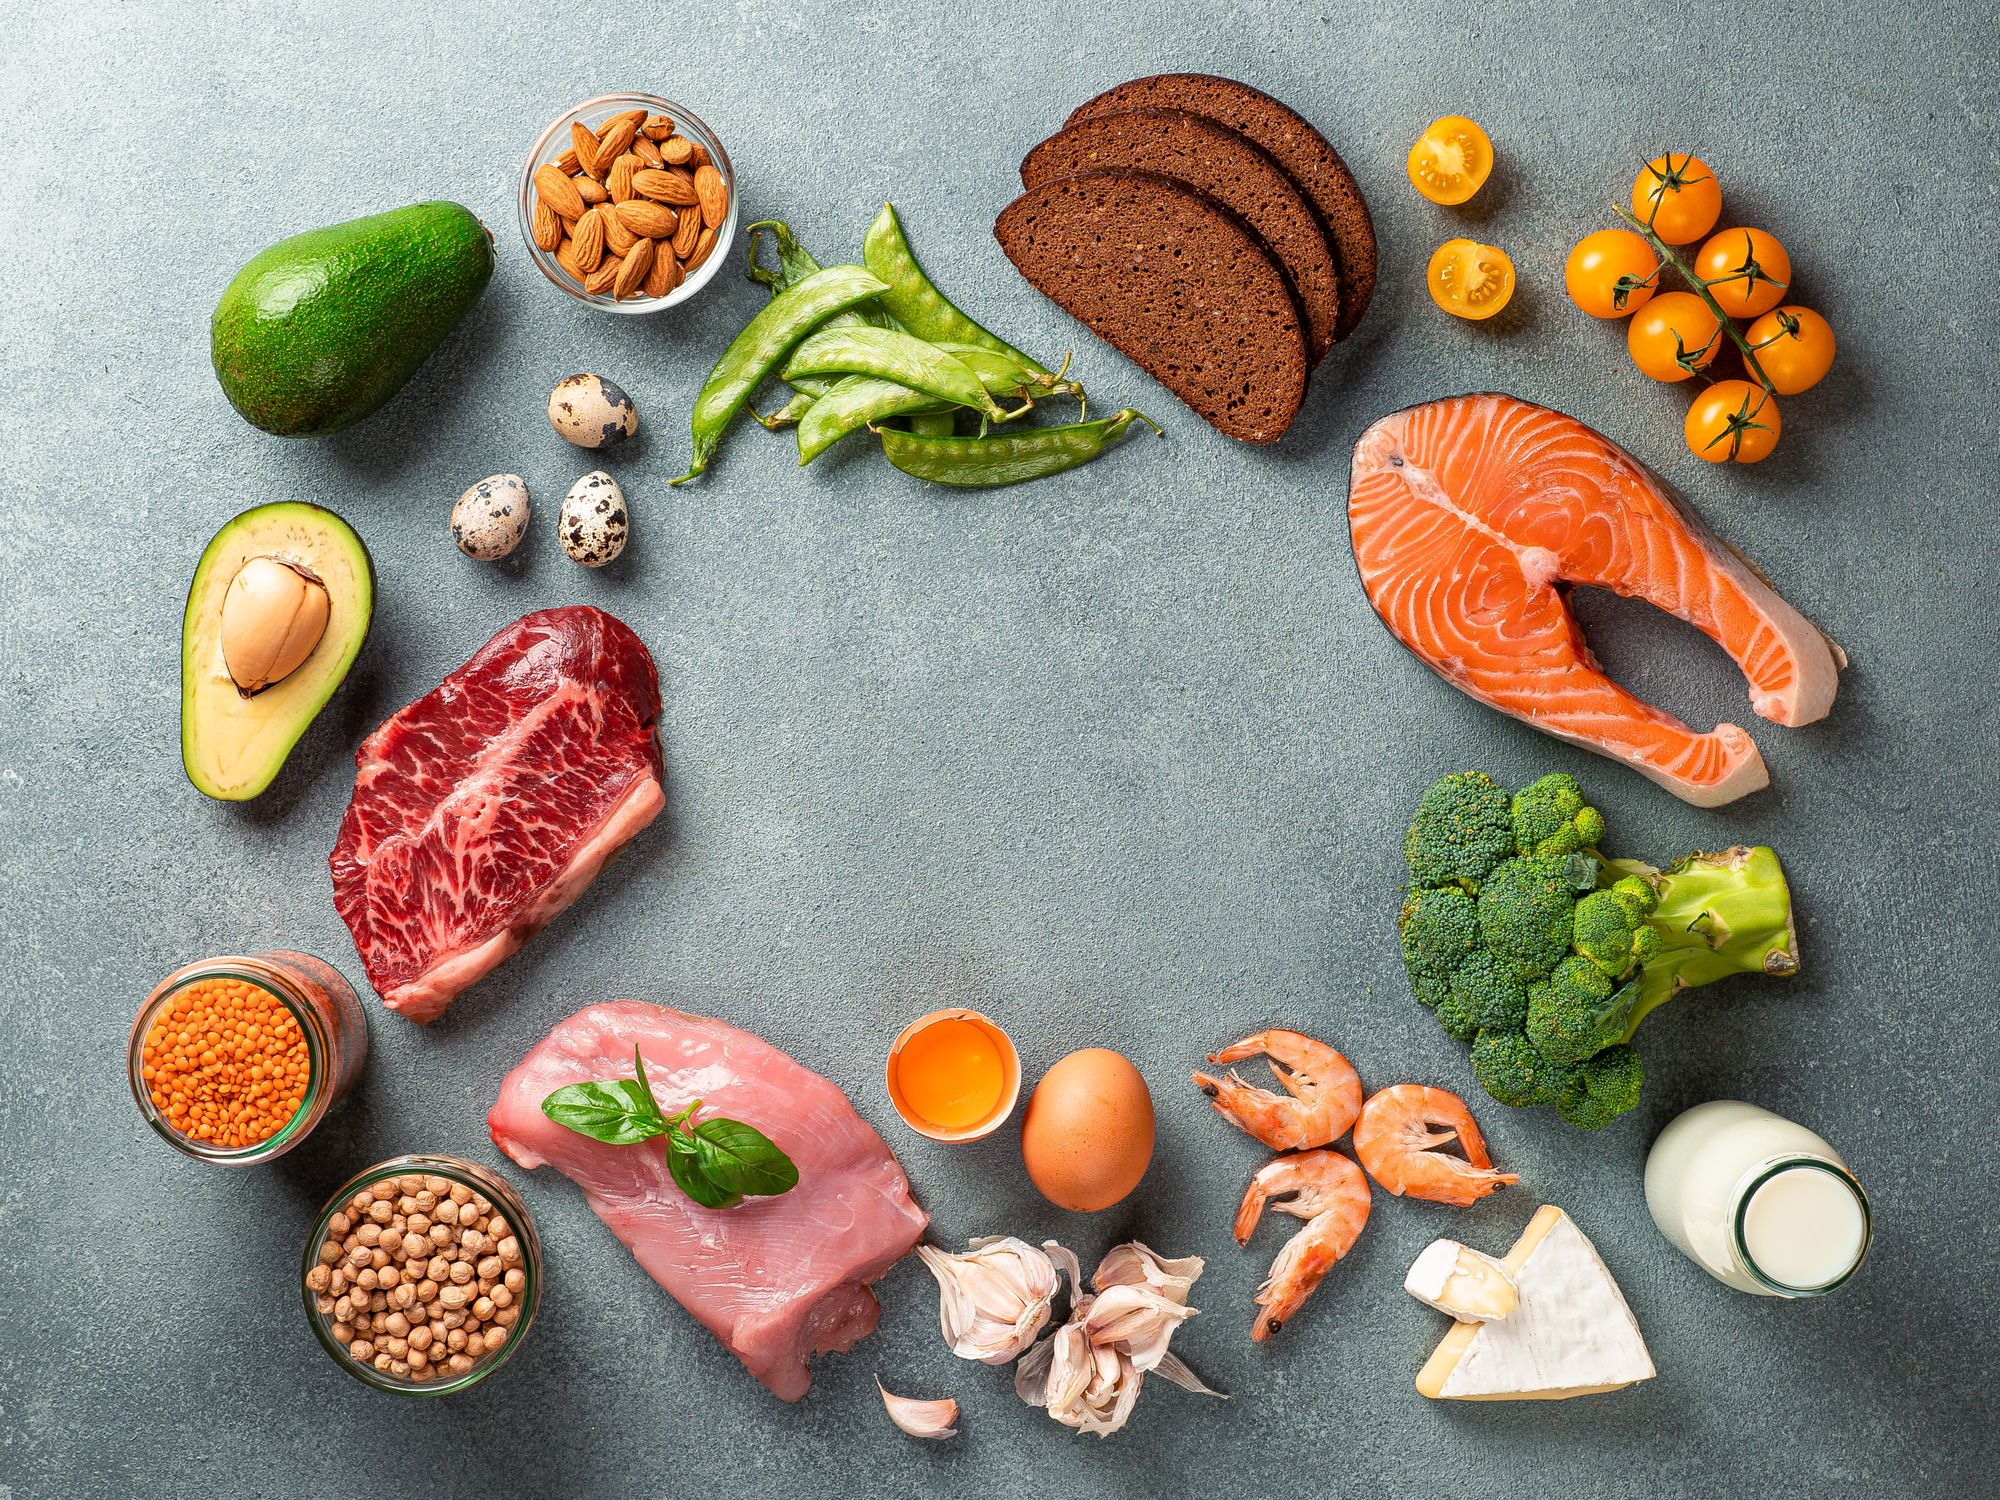 A photo representation of a balanced diet foods